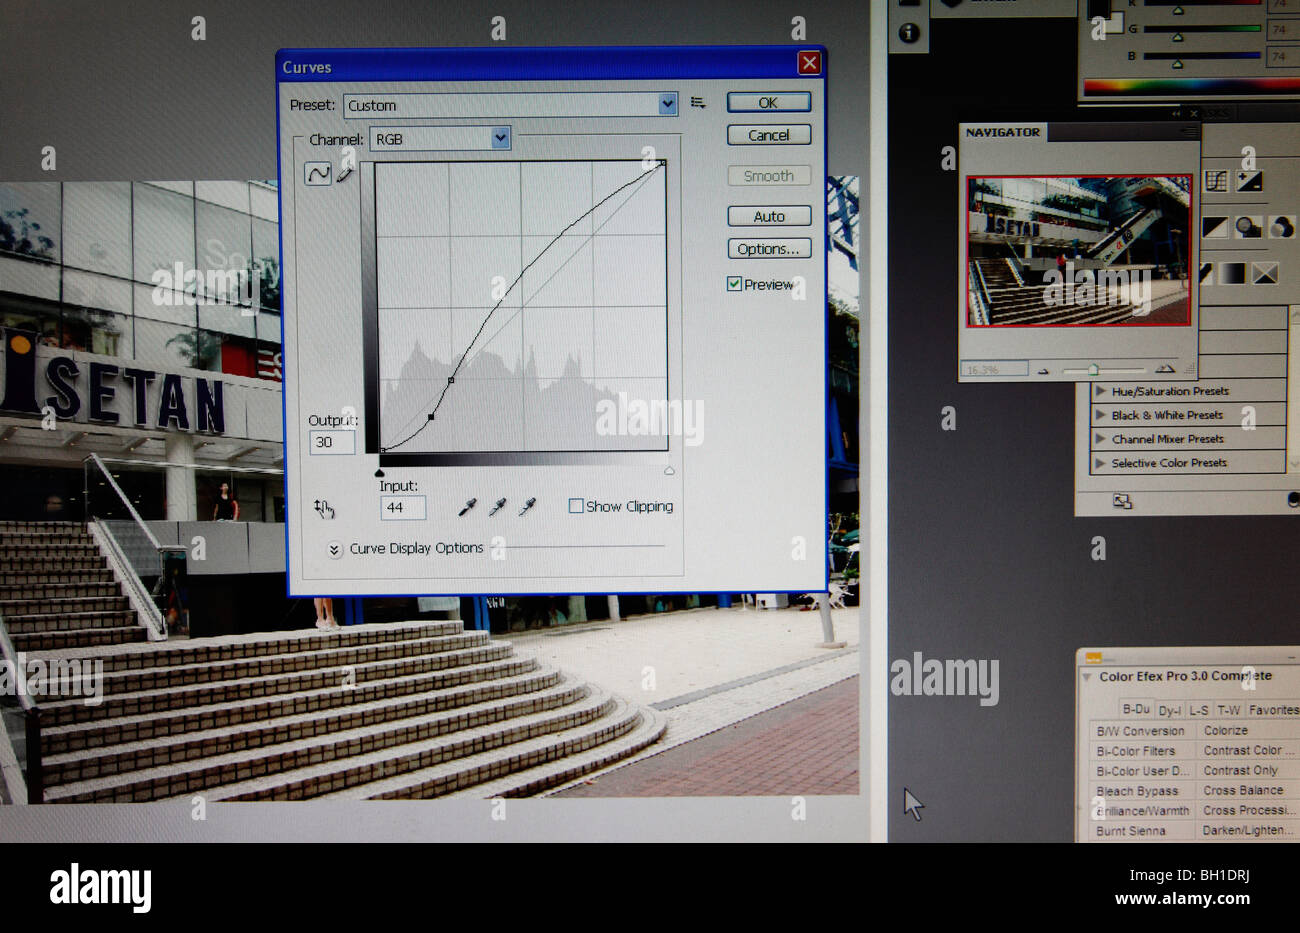 Photo Processing Stock Photos & Photo Processing Stock Images - Alamy